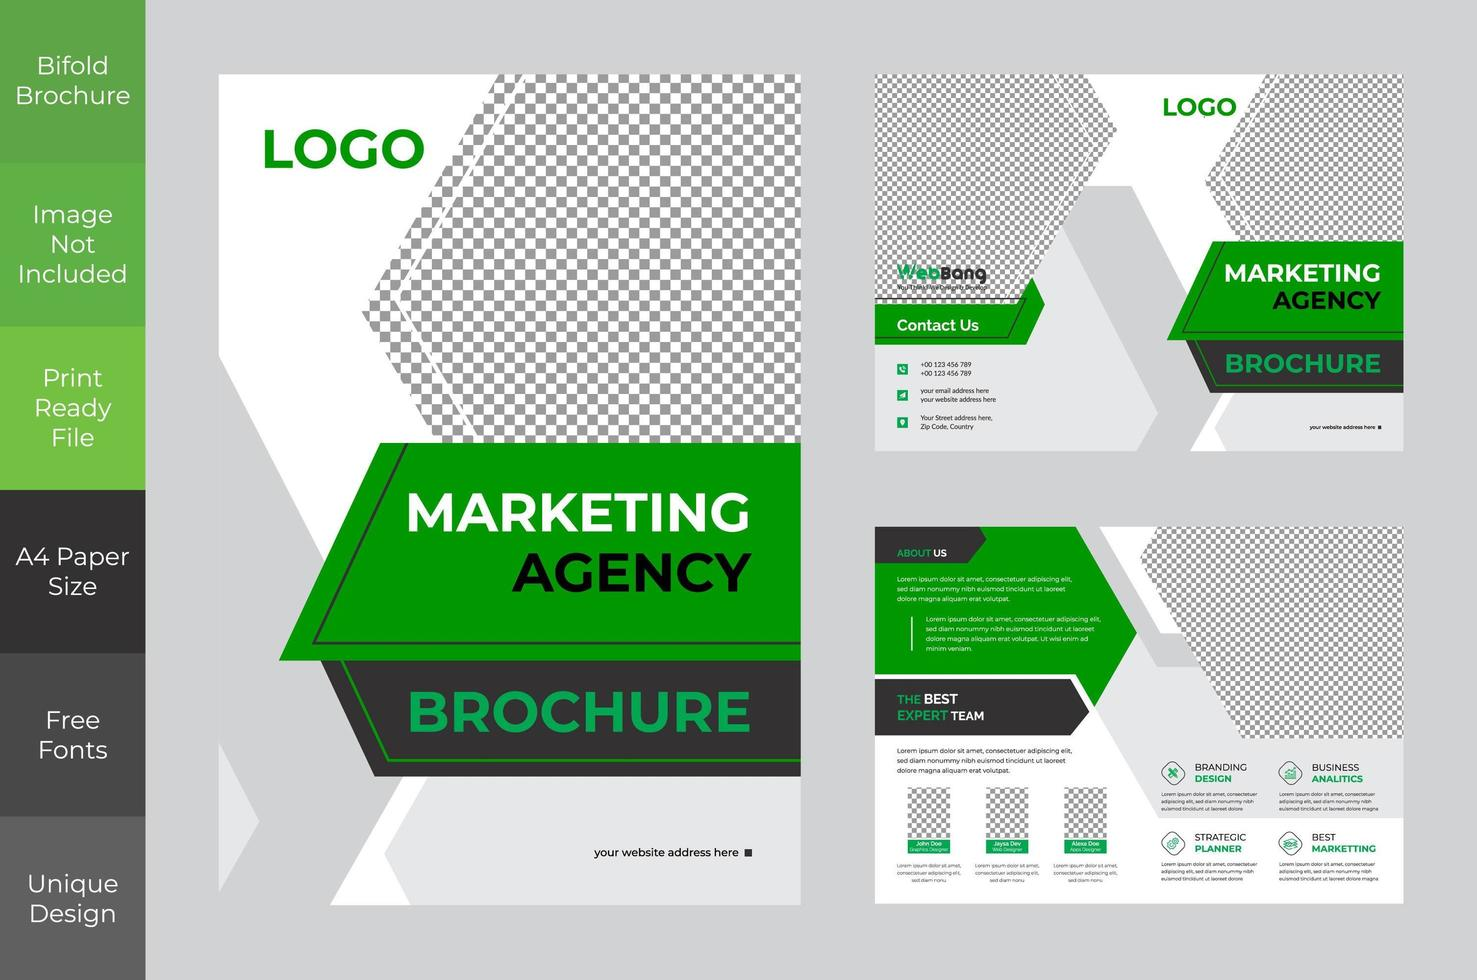 conception de brochure pliante marketing audacieux vert vecteur